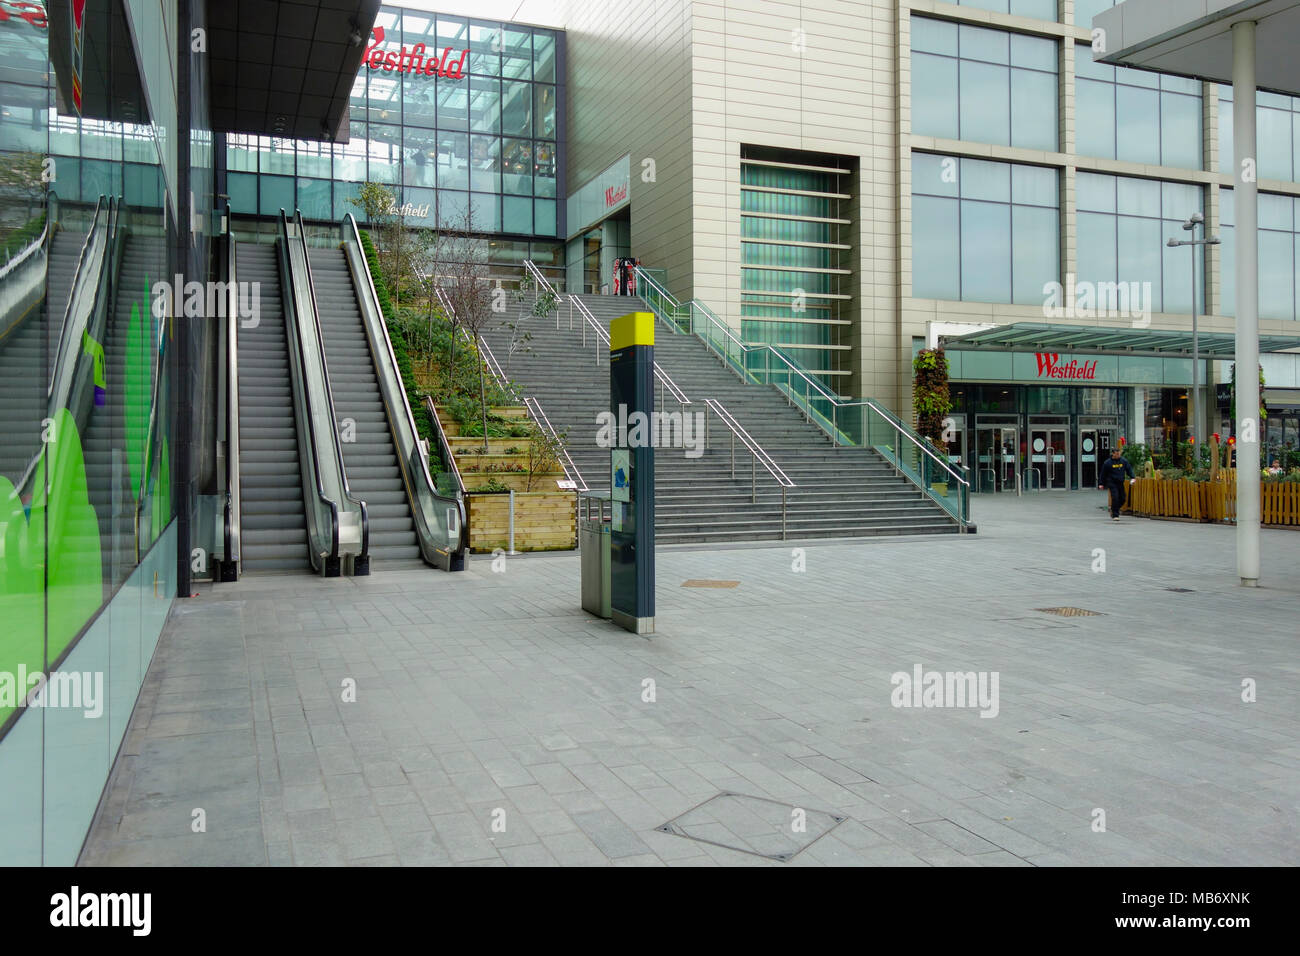 Westfield Stratford City, shopping centre, London, United Kingdom, UK Stock Photo